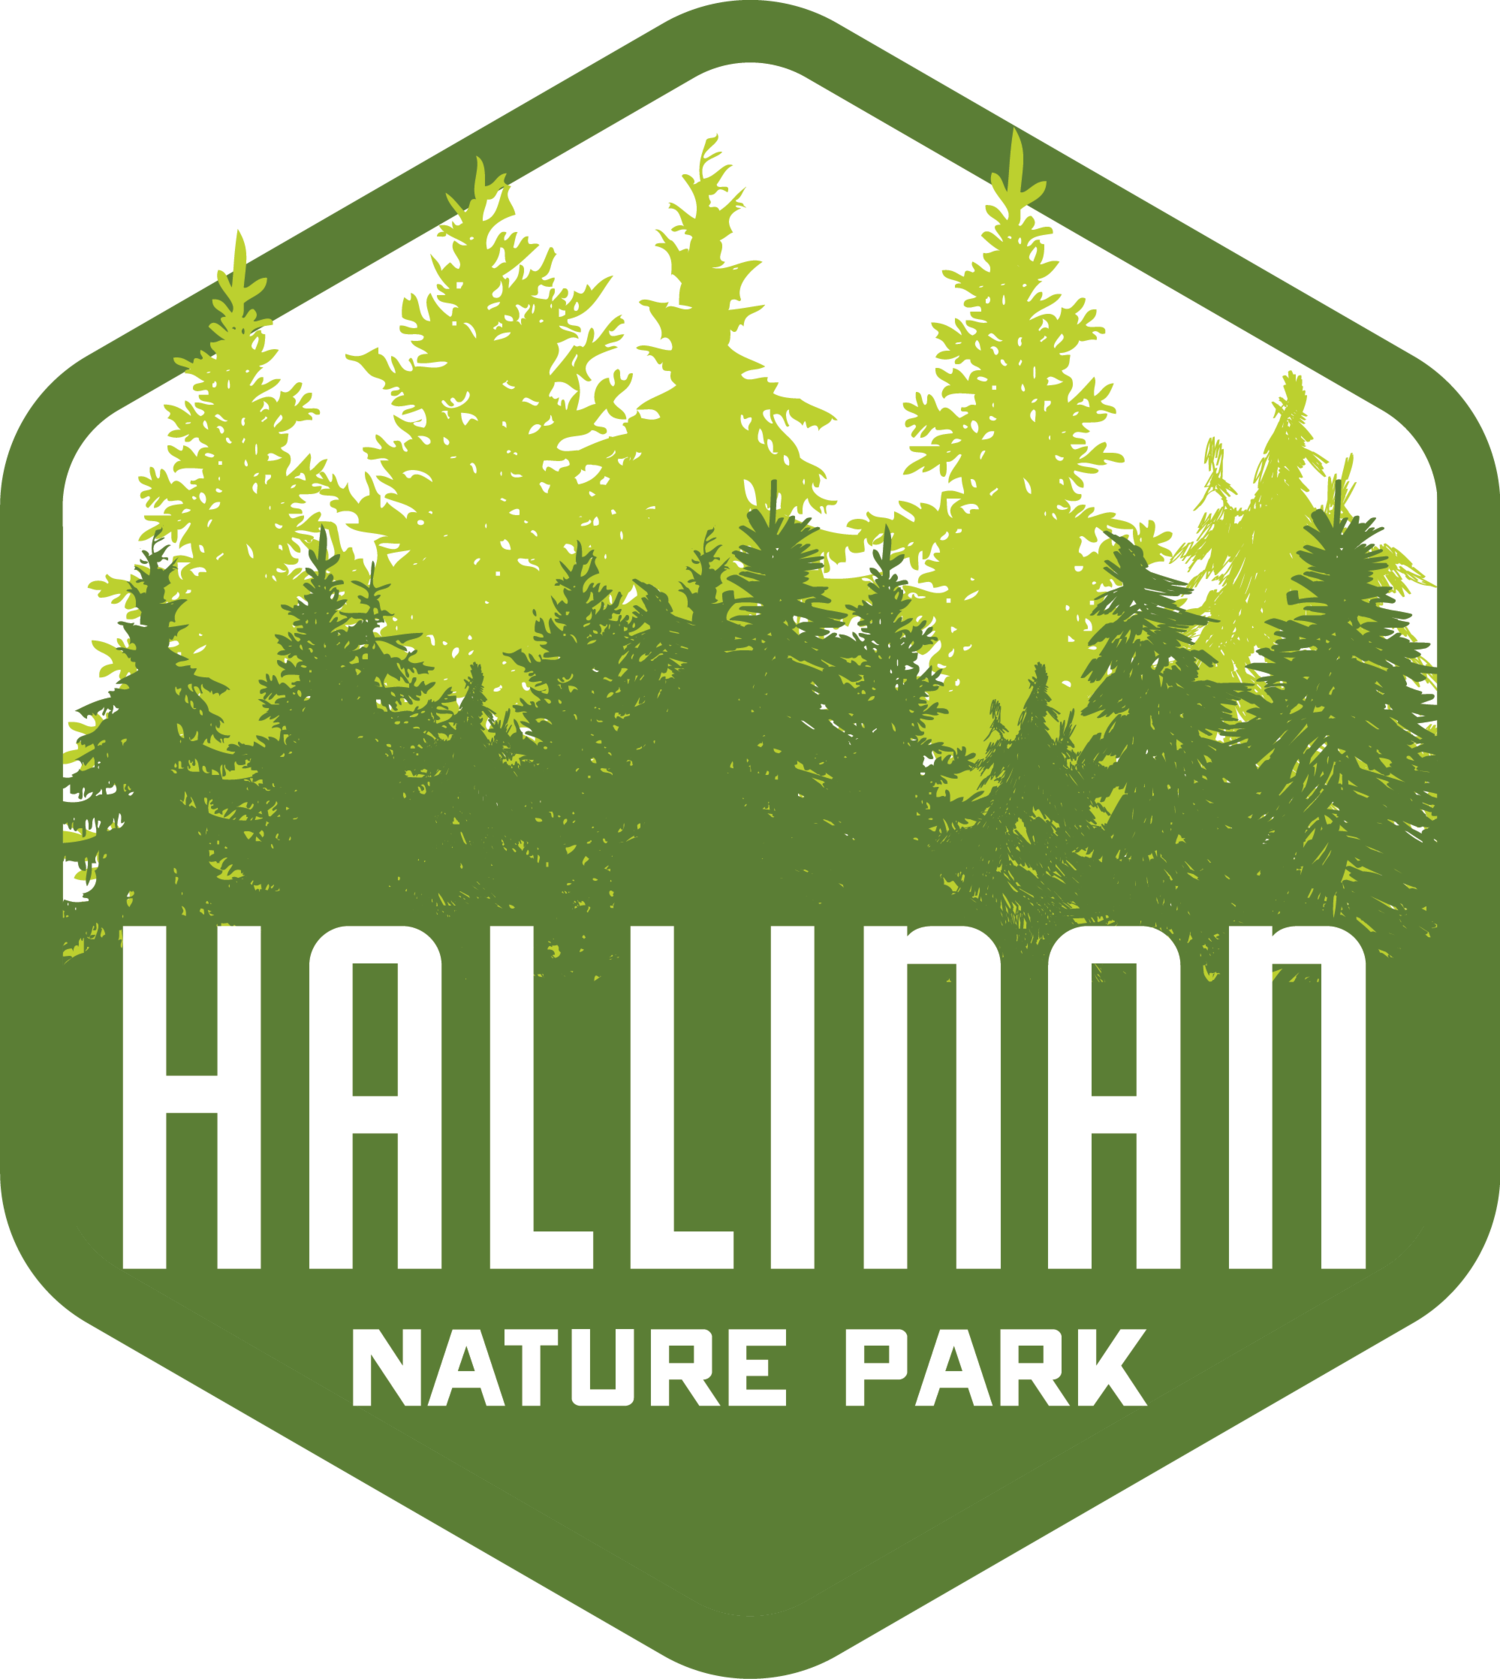 Let's Create Hallinan Nature Park